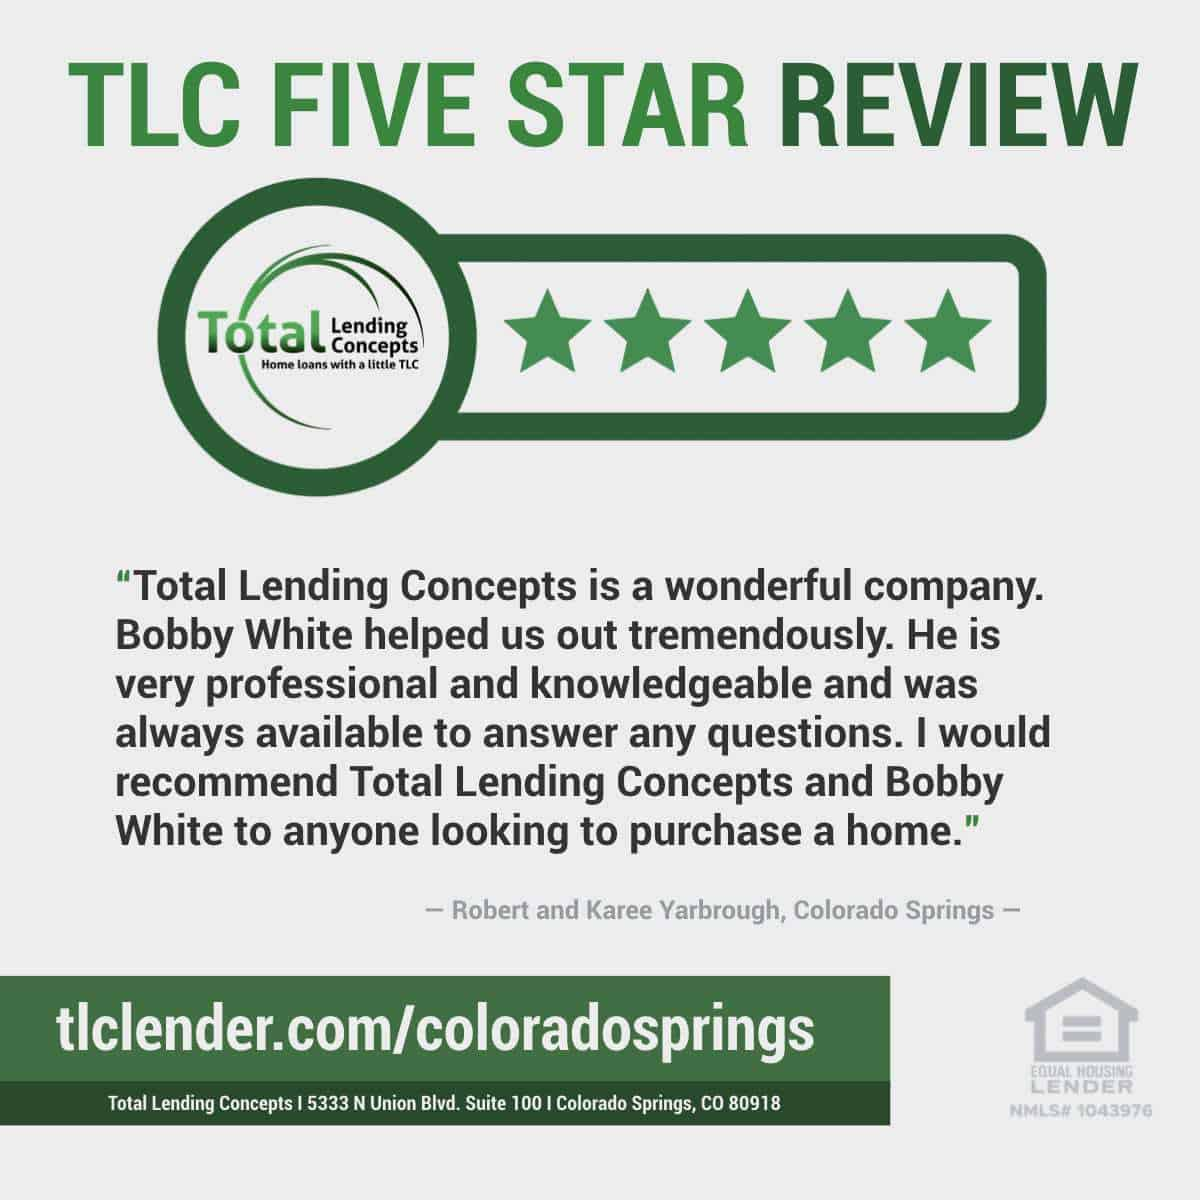 Total Lending Concepts Five Star Review Bobby White in Colorado Springs for Robert and Karee Yarbrough